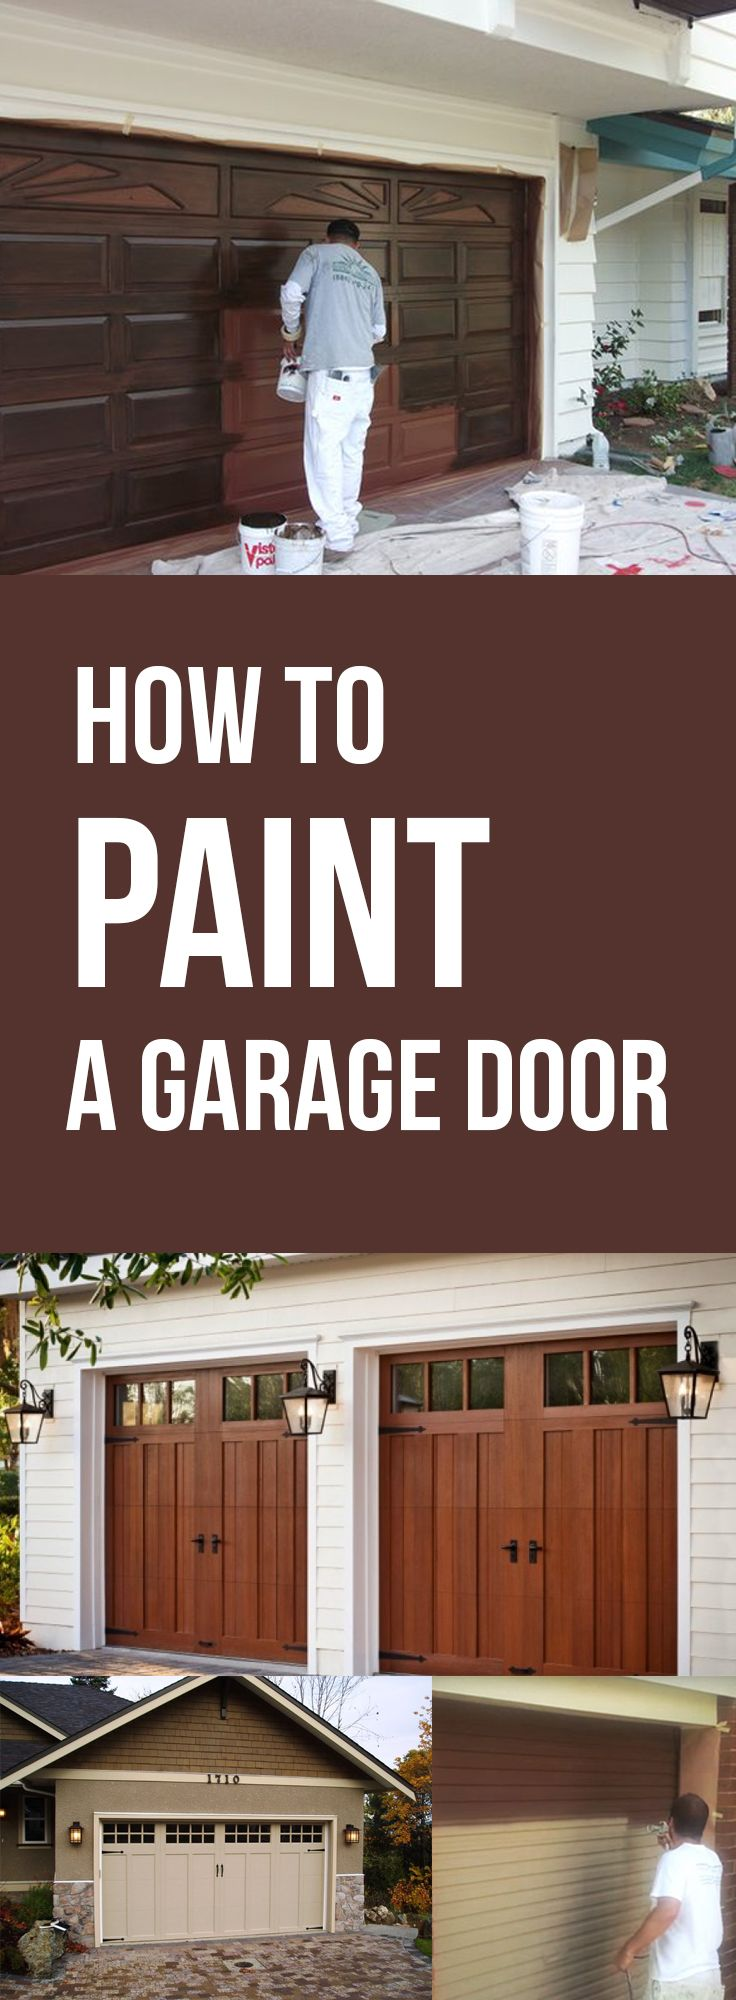 color as metal same paint trim doors door painting for garage design